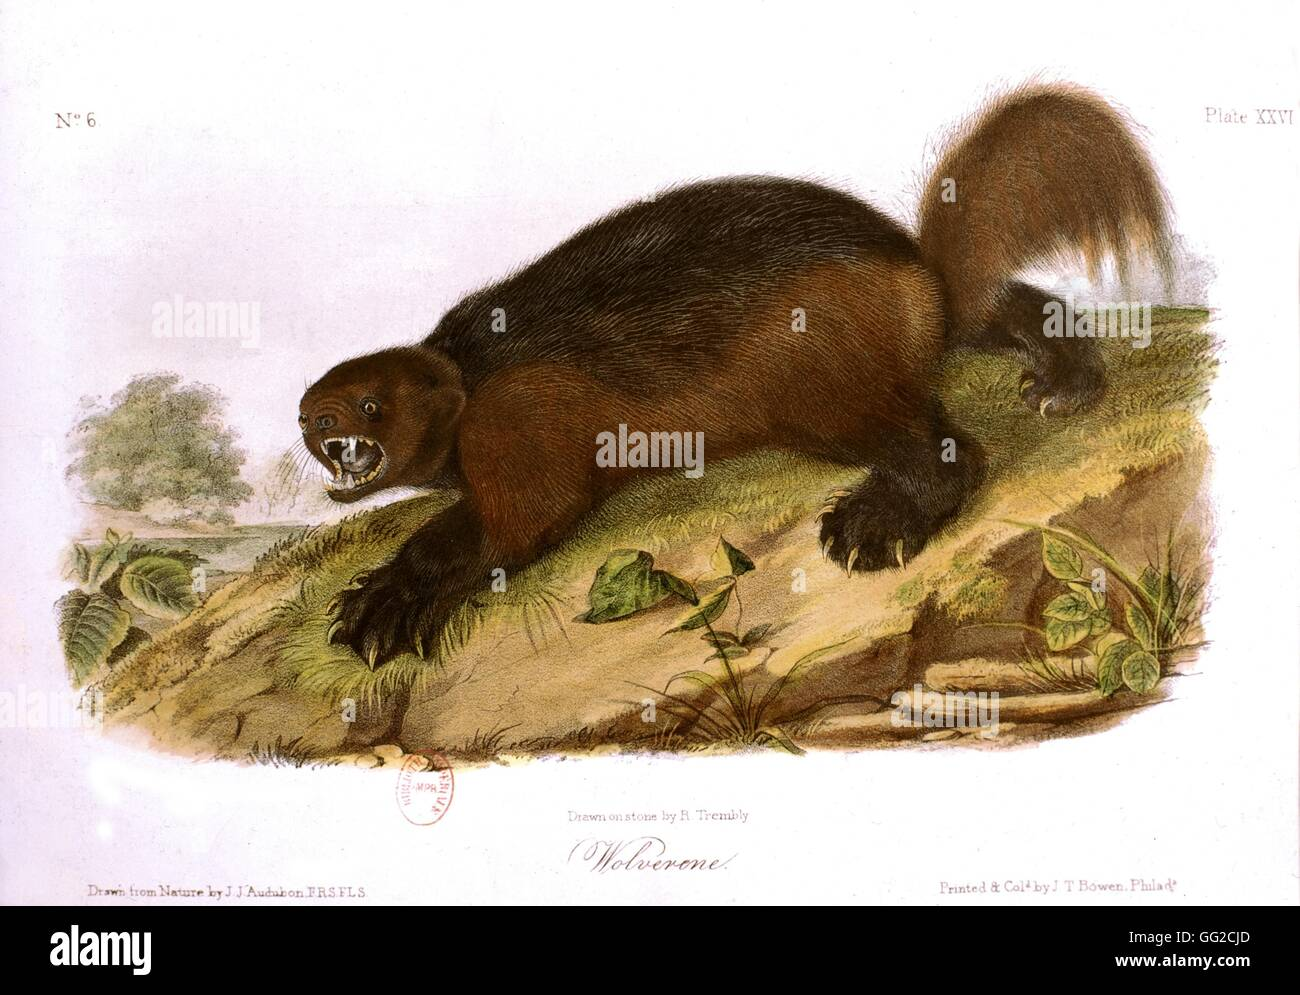 Quadrupeds from North America: the wolverine 1845 J.J. Auderbon and Rév. Bachman - Stock Image